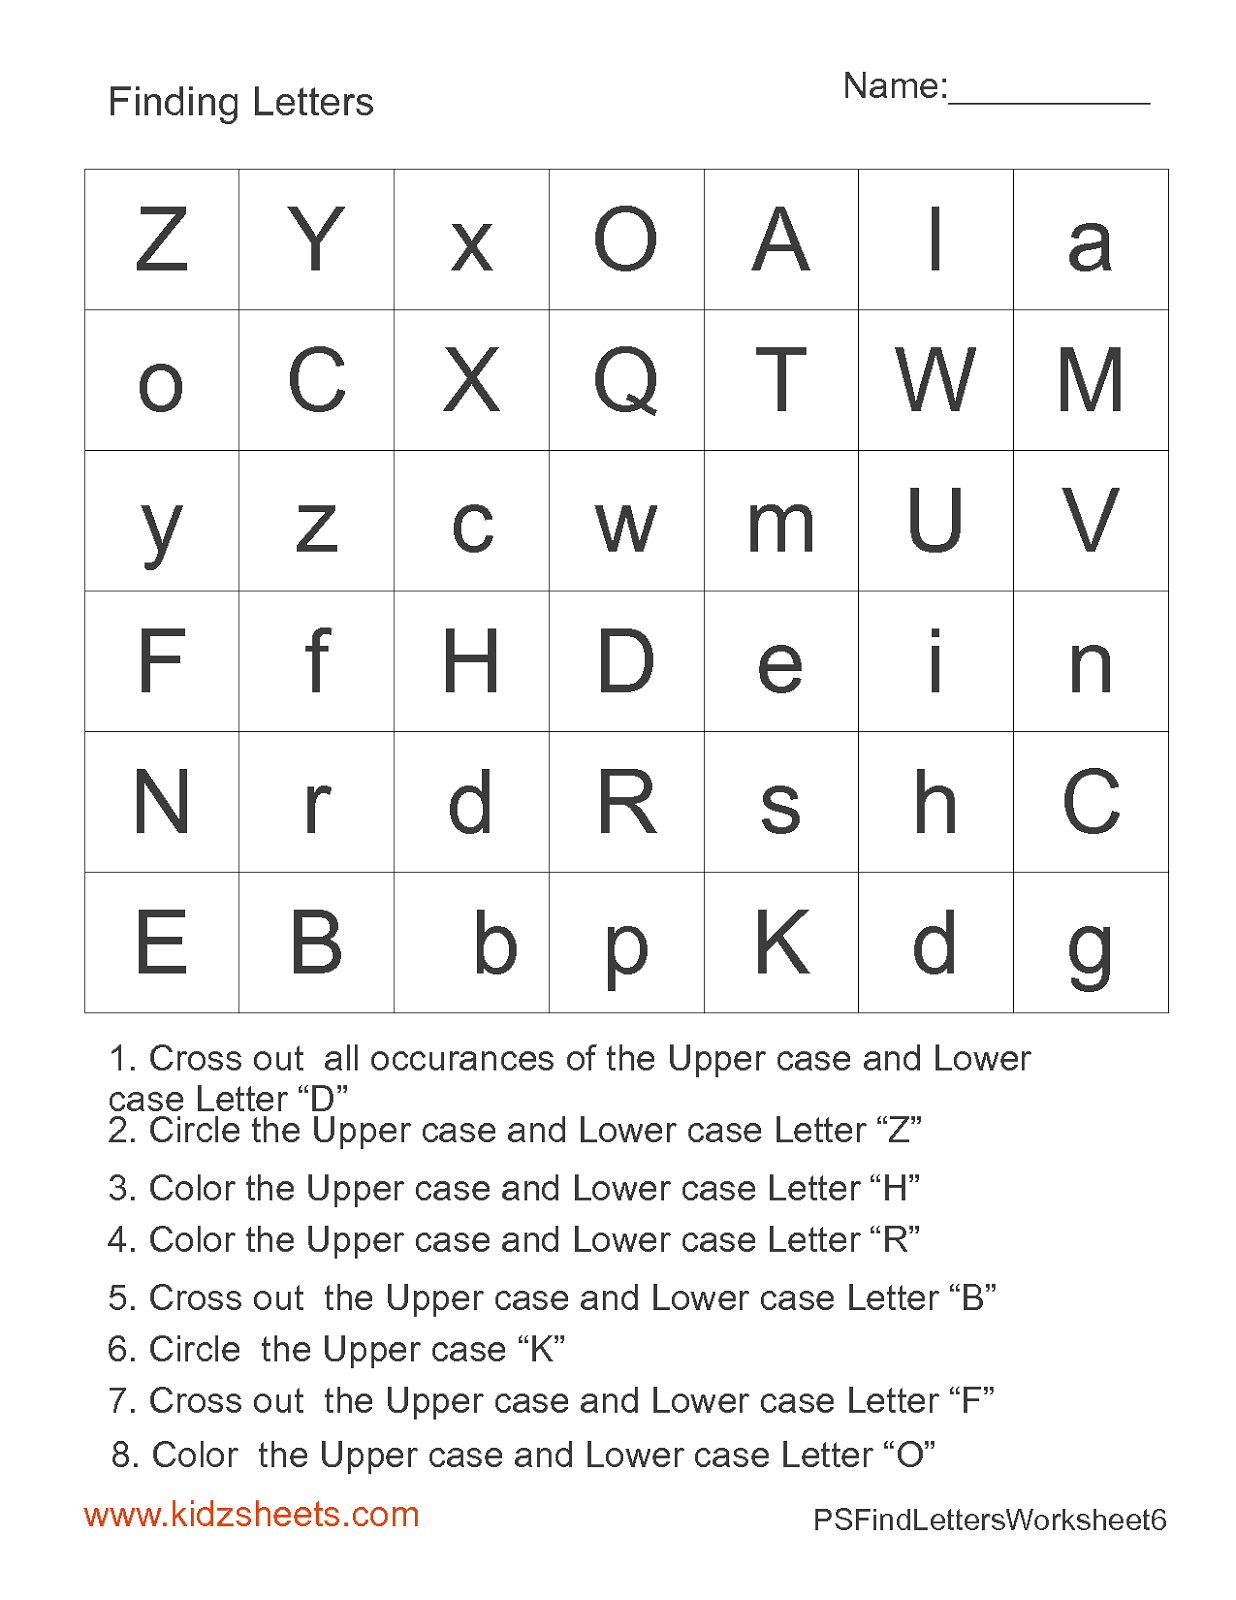 Free Printable Preschool Worksheets, Free Worksheets, Kids Maths Worksheets, Maths Worksheets, Preschool Find Letters,Find Letters, Preschool, Kids Find Letters.